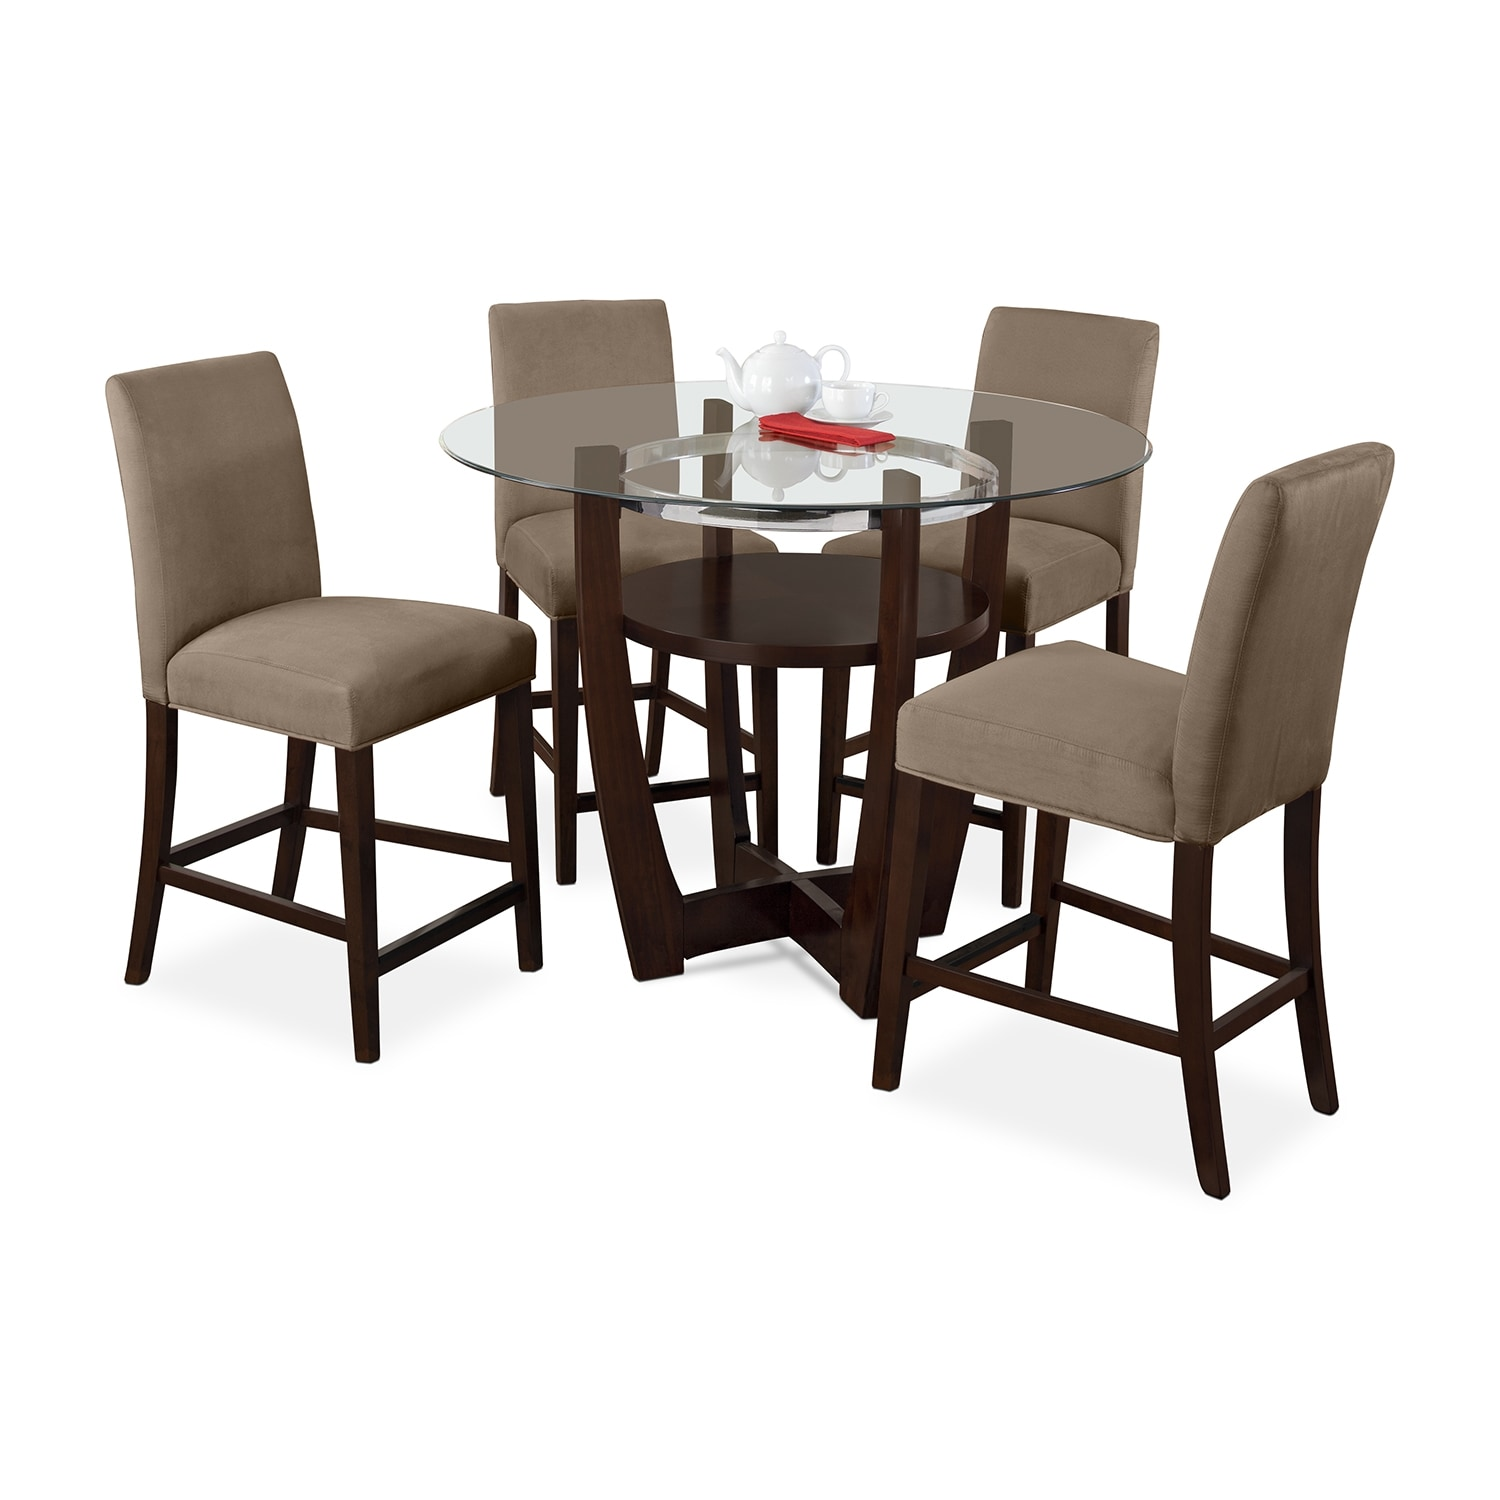 Dining Room Furniture - Alcove Counter-Height Dinette with 4 Side Chairs - Beige